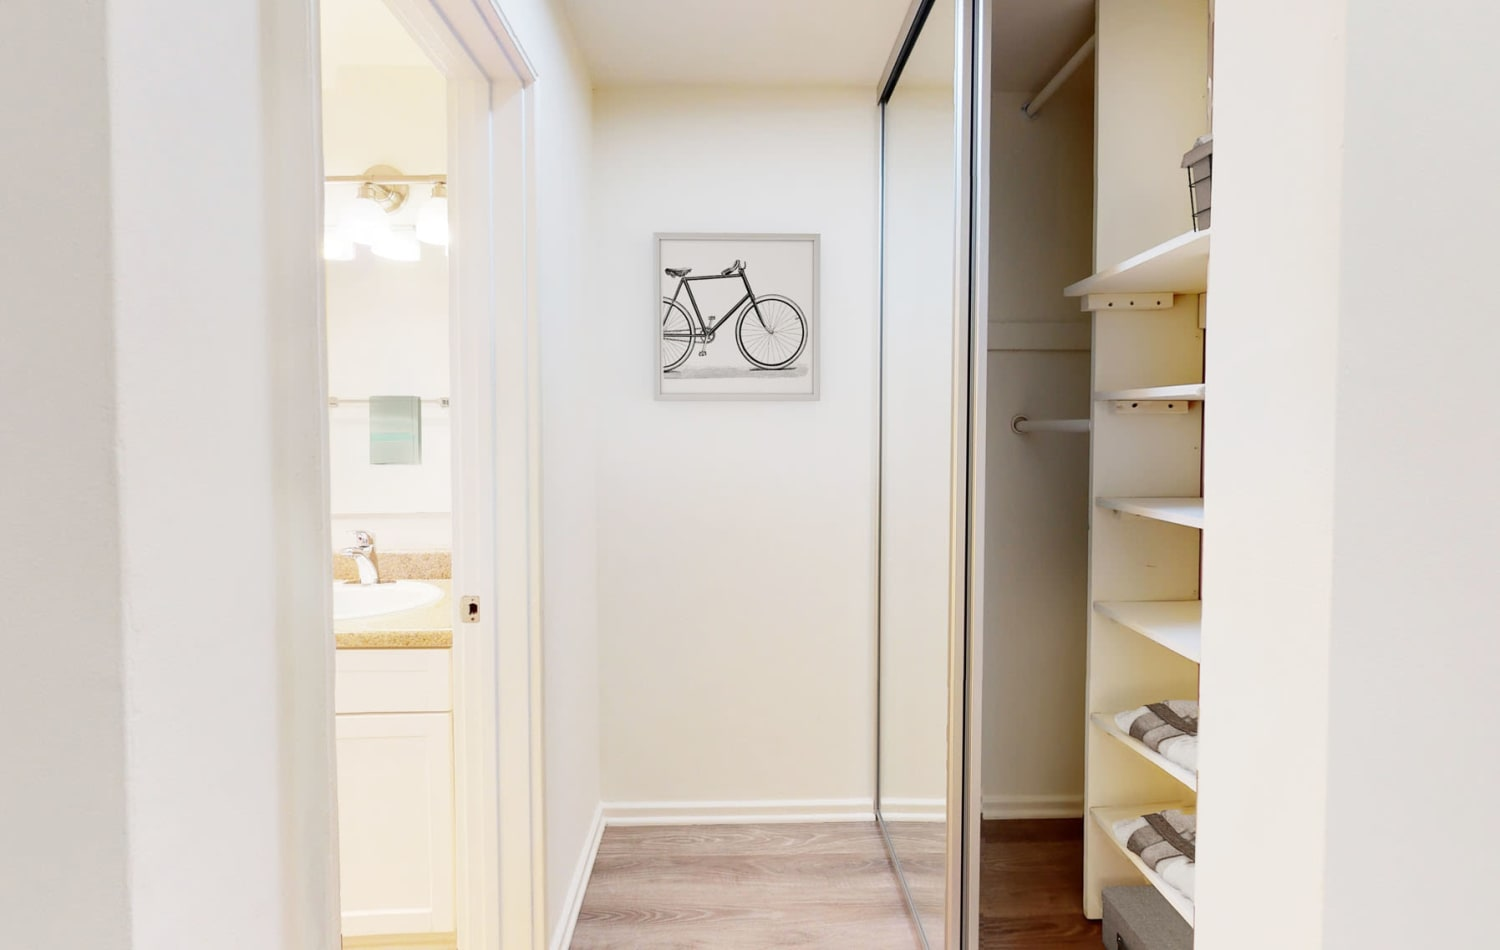 Mirrored closet doors and built-in shelving in a model two bedroom home's primary suite at West Park Village in Los Angeles, California